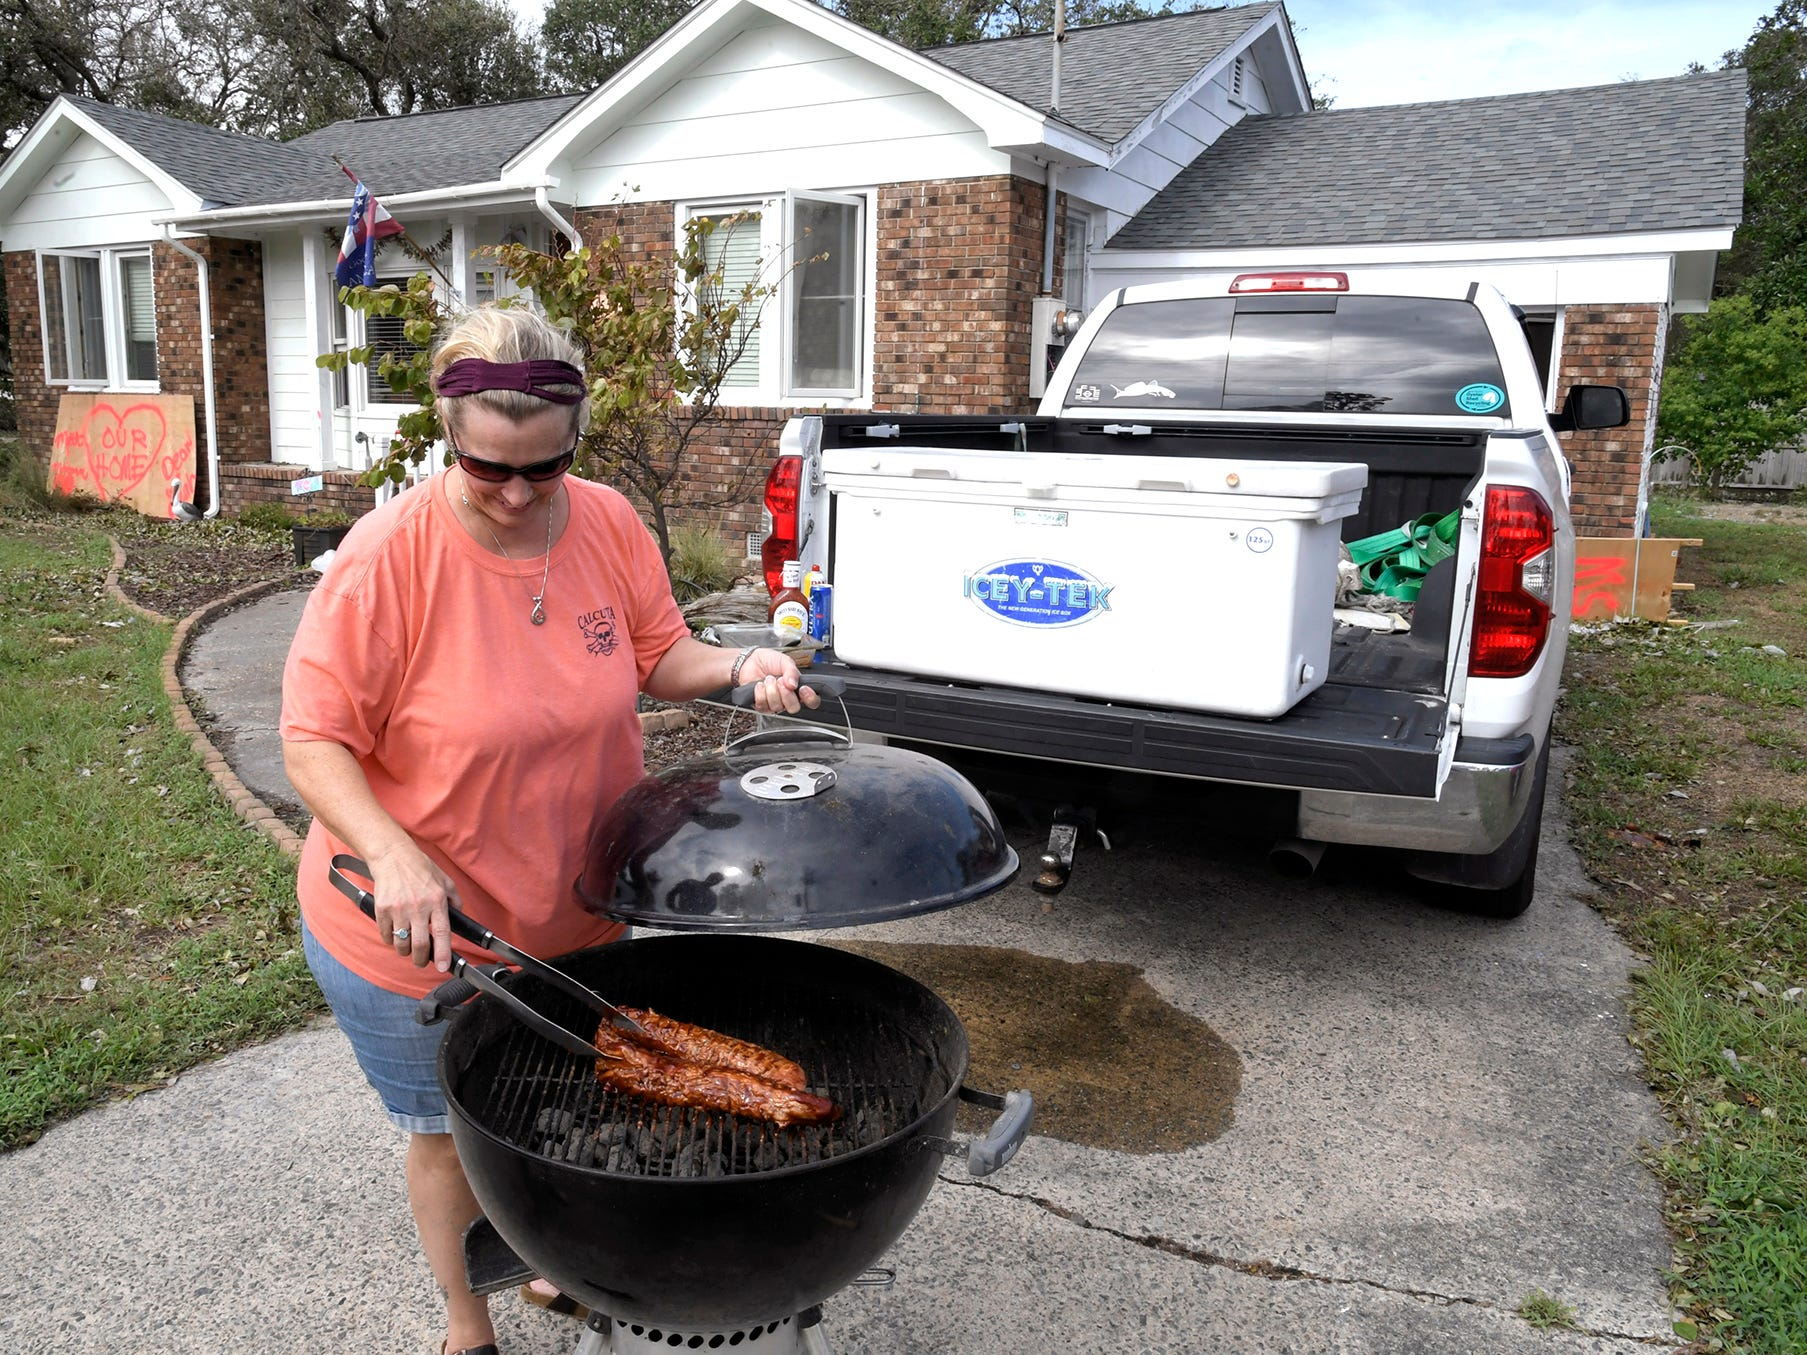 With no electricity, Leigh Bartlett cooks food on a charcoal grill for her family and neighbors in her Harkers Island driveway on Monday, Sept. 17, 2018. Bartlett heard that Harkers Island might be without power for a month.